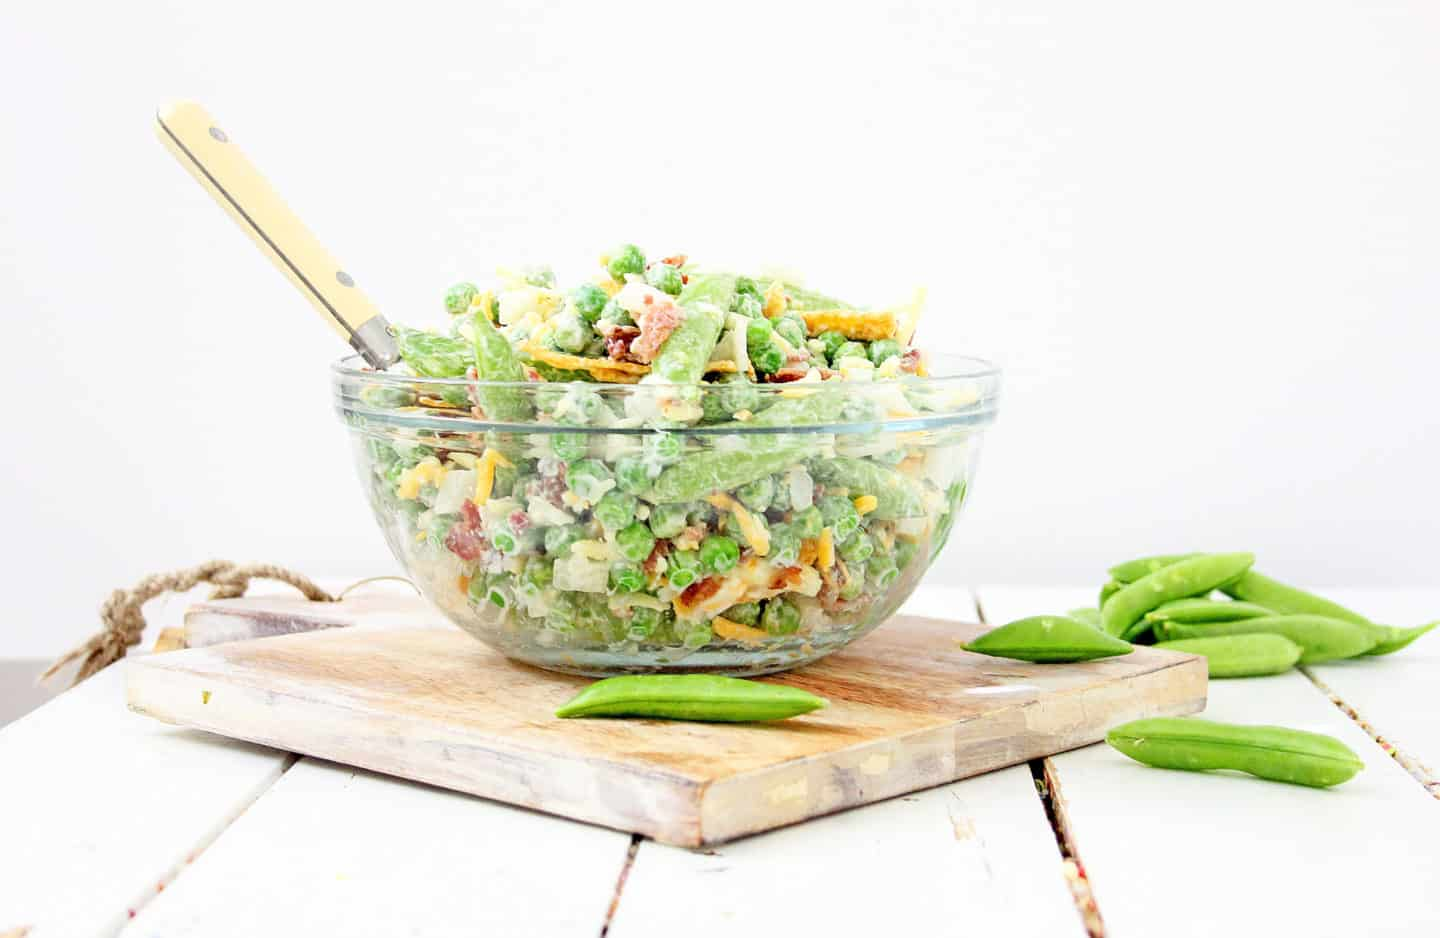 A bowl of pea salad with fresh peas, bacon, shredded cheese, and more.